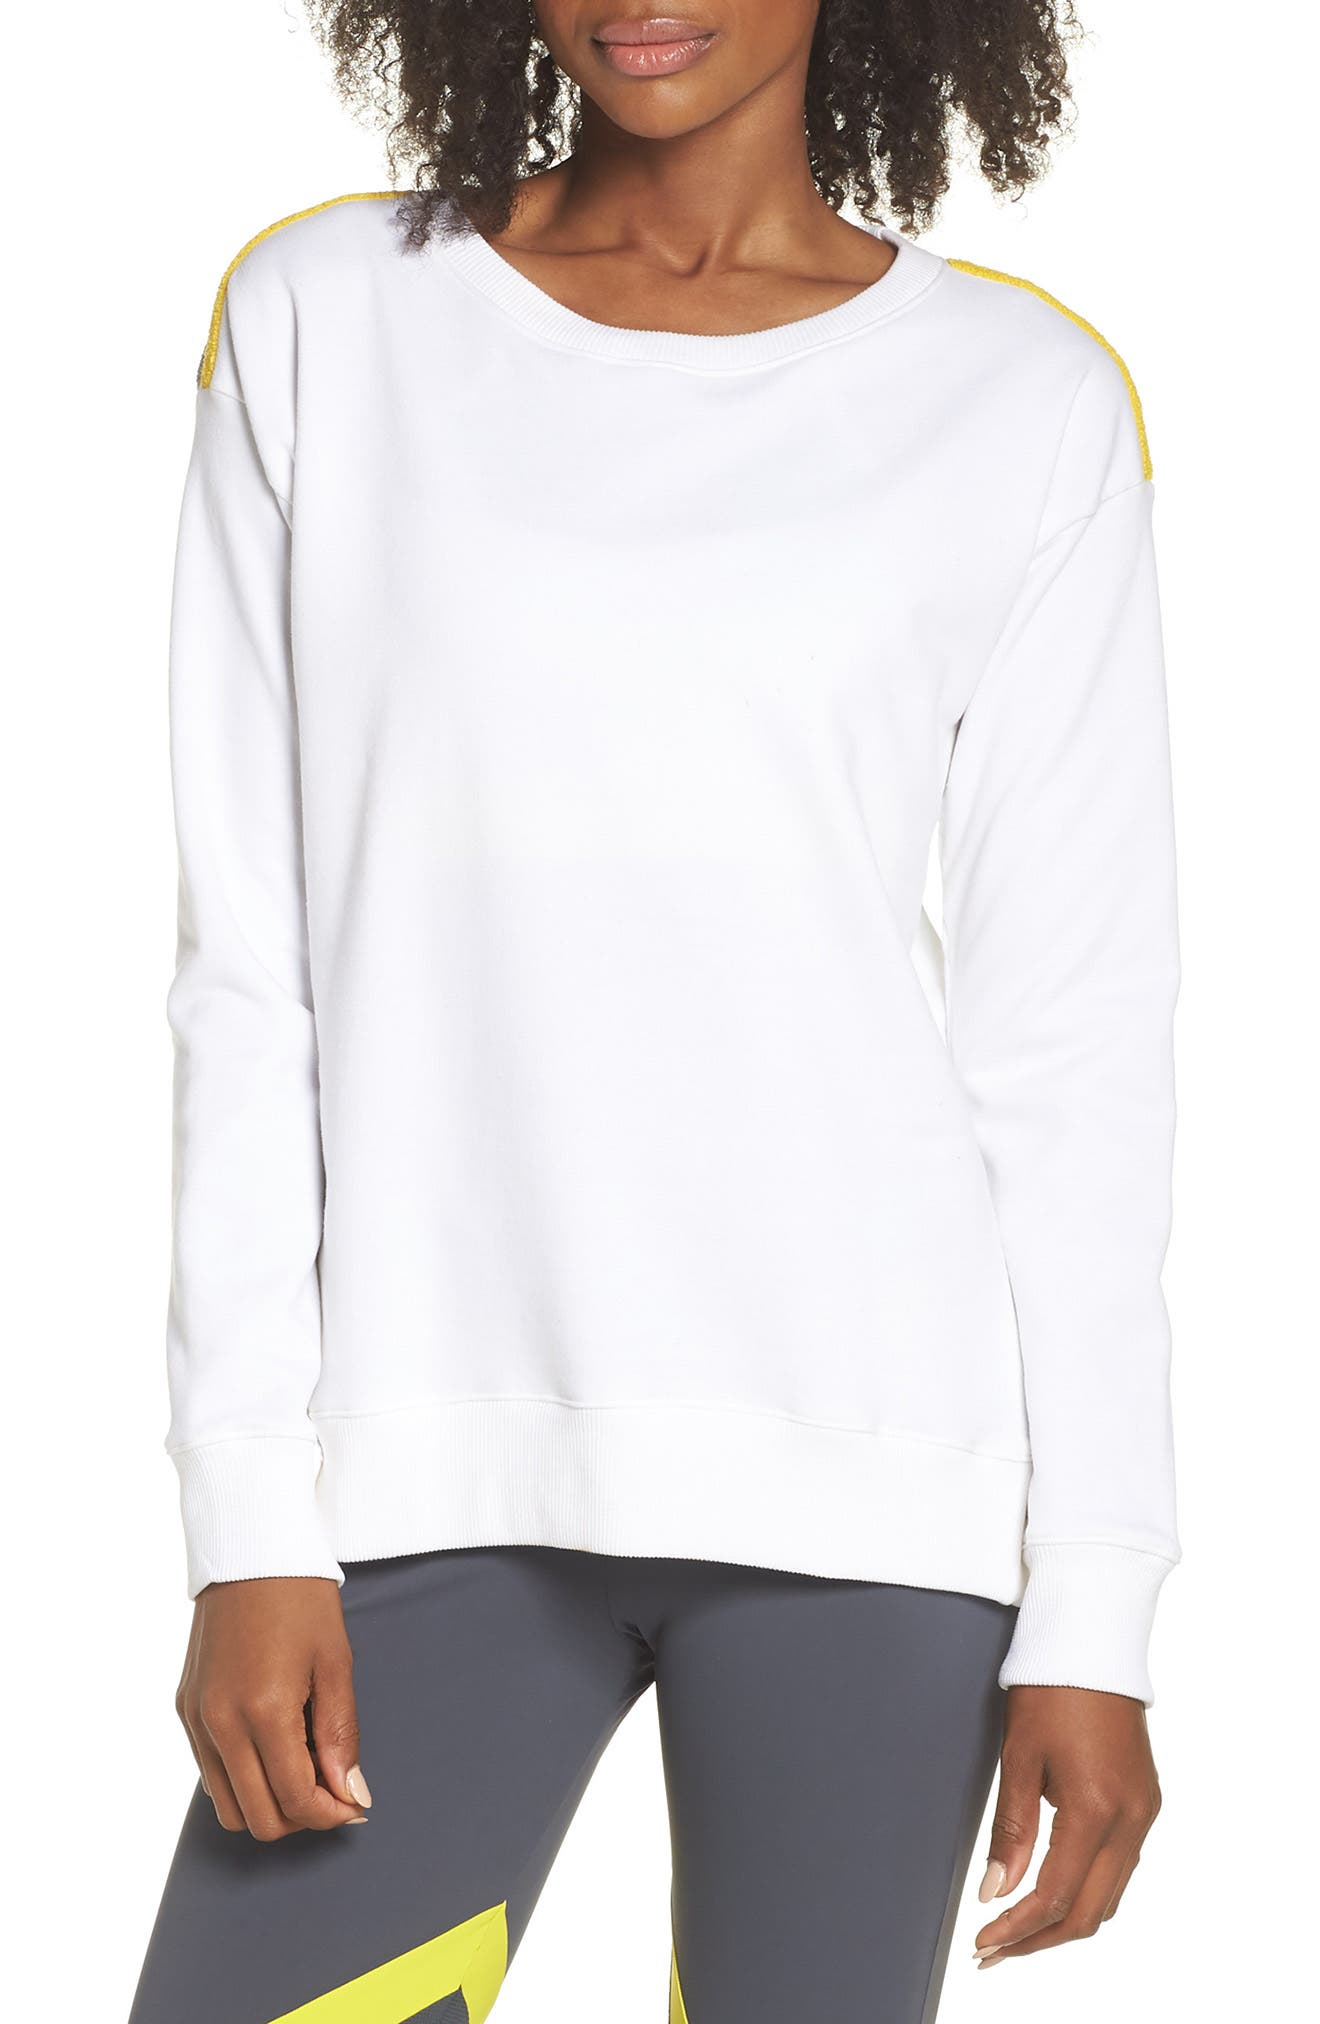 BoomBoom Athletica Tricolor Shoulder Sweatshirt,                         Main,                         color, White/ Grey/ Yellow